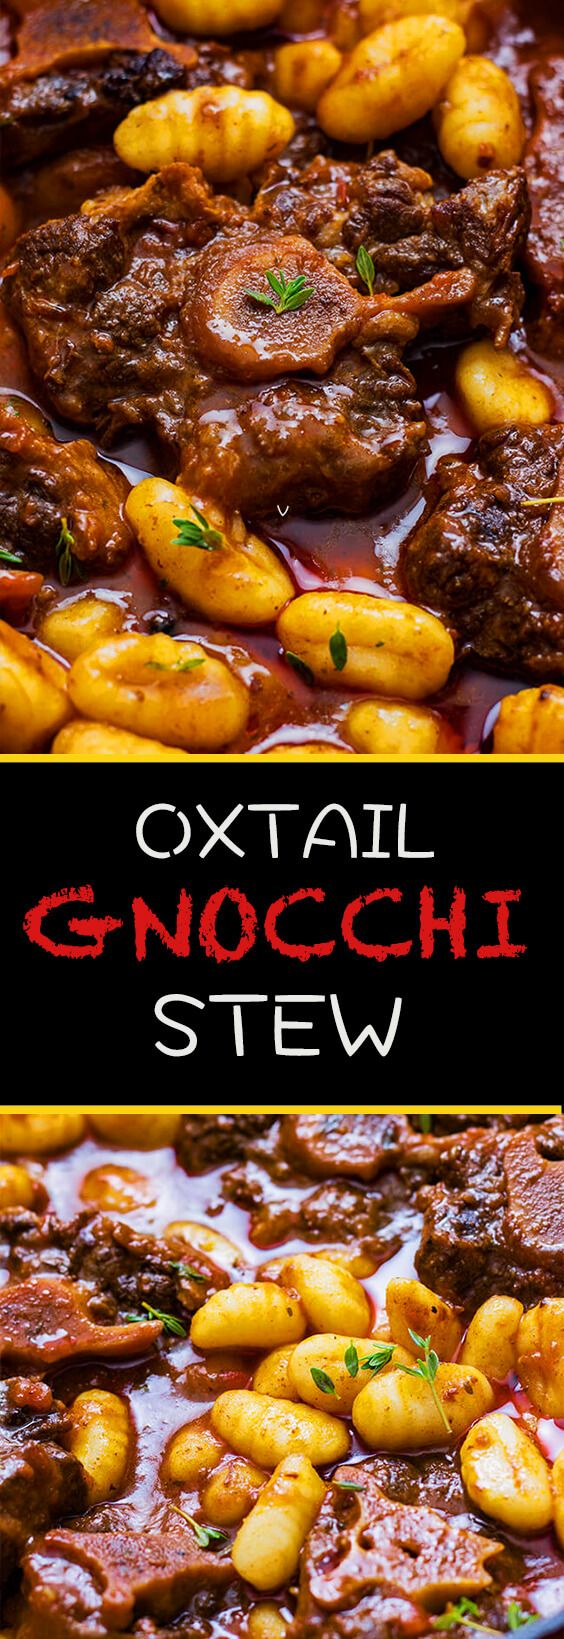 This oxtail gnocchi stew is the perfect beef stew. It is rich and indulgent and also very flavorful. Make it today!